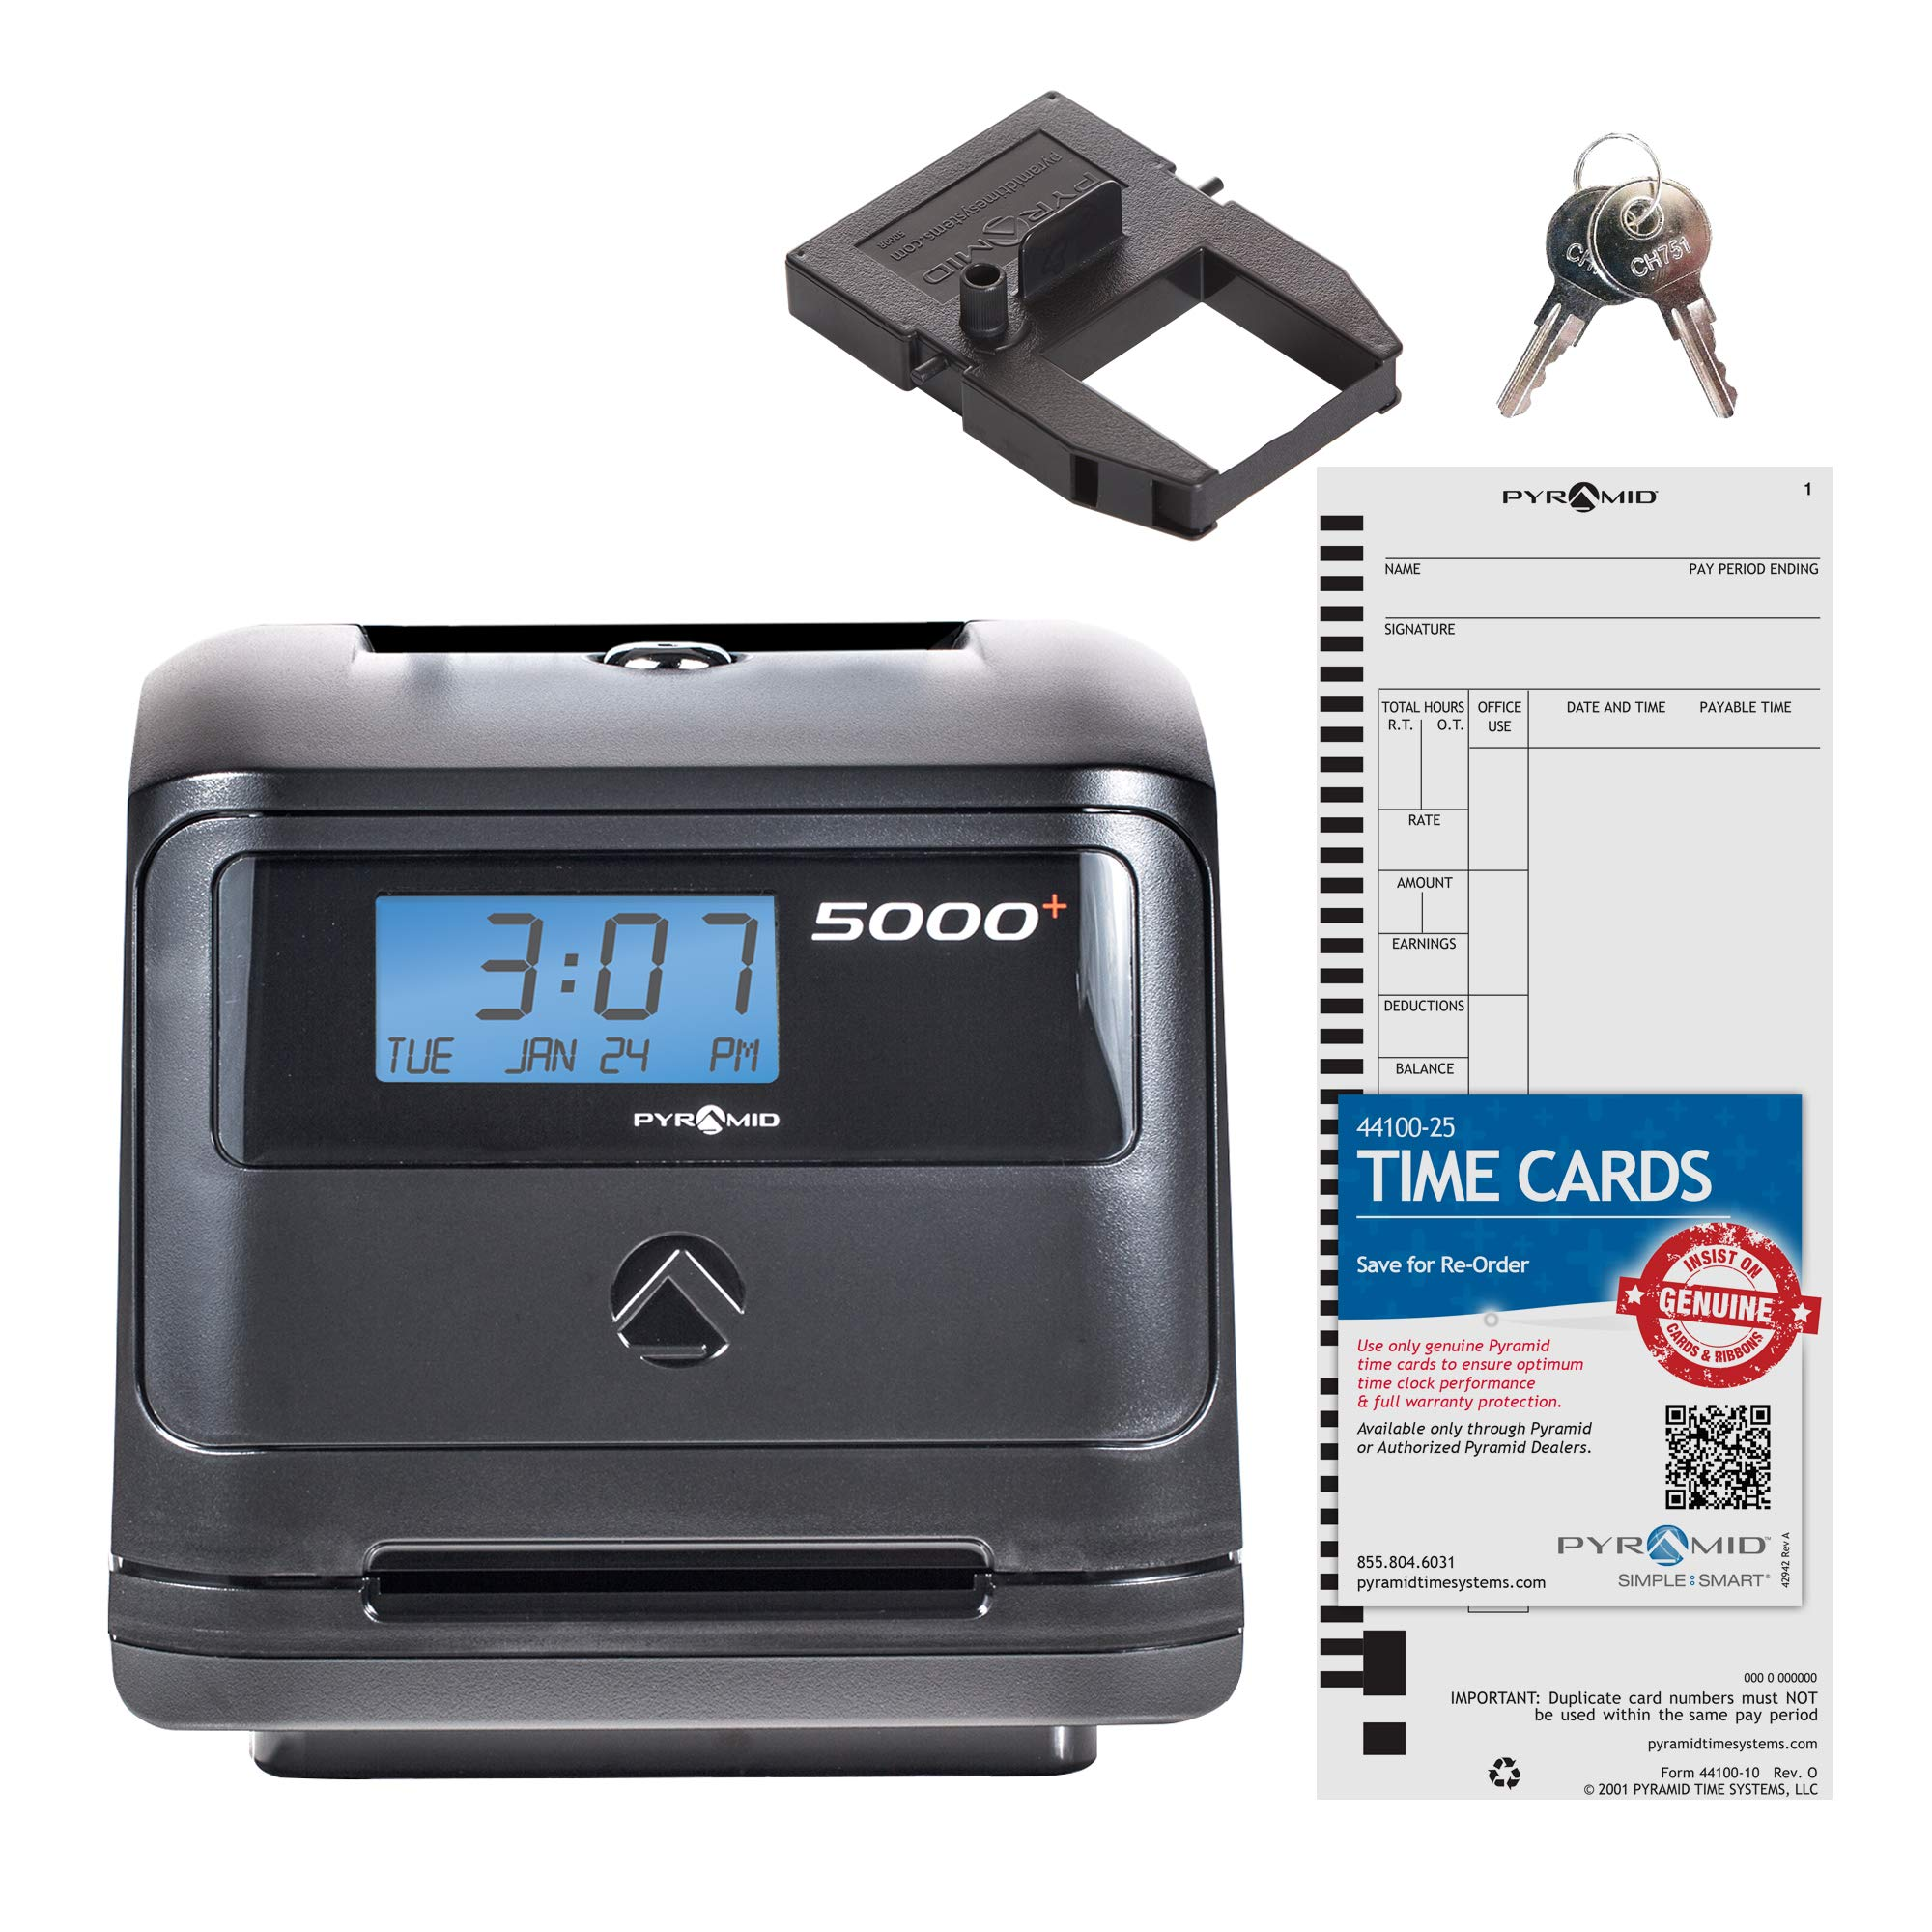 Pyramid 5000 Auto Totaling Time Clock, 100 Employees - Made in USA by Pyramid Time Systems